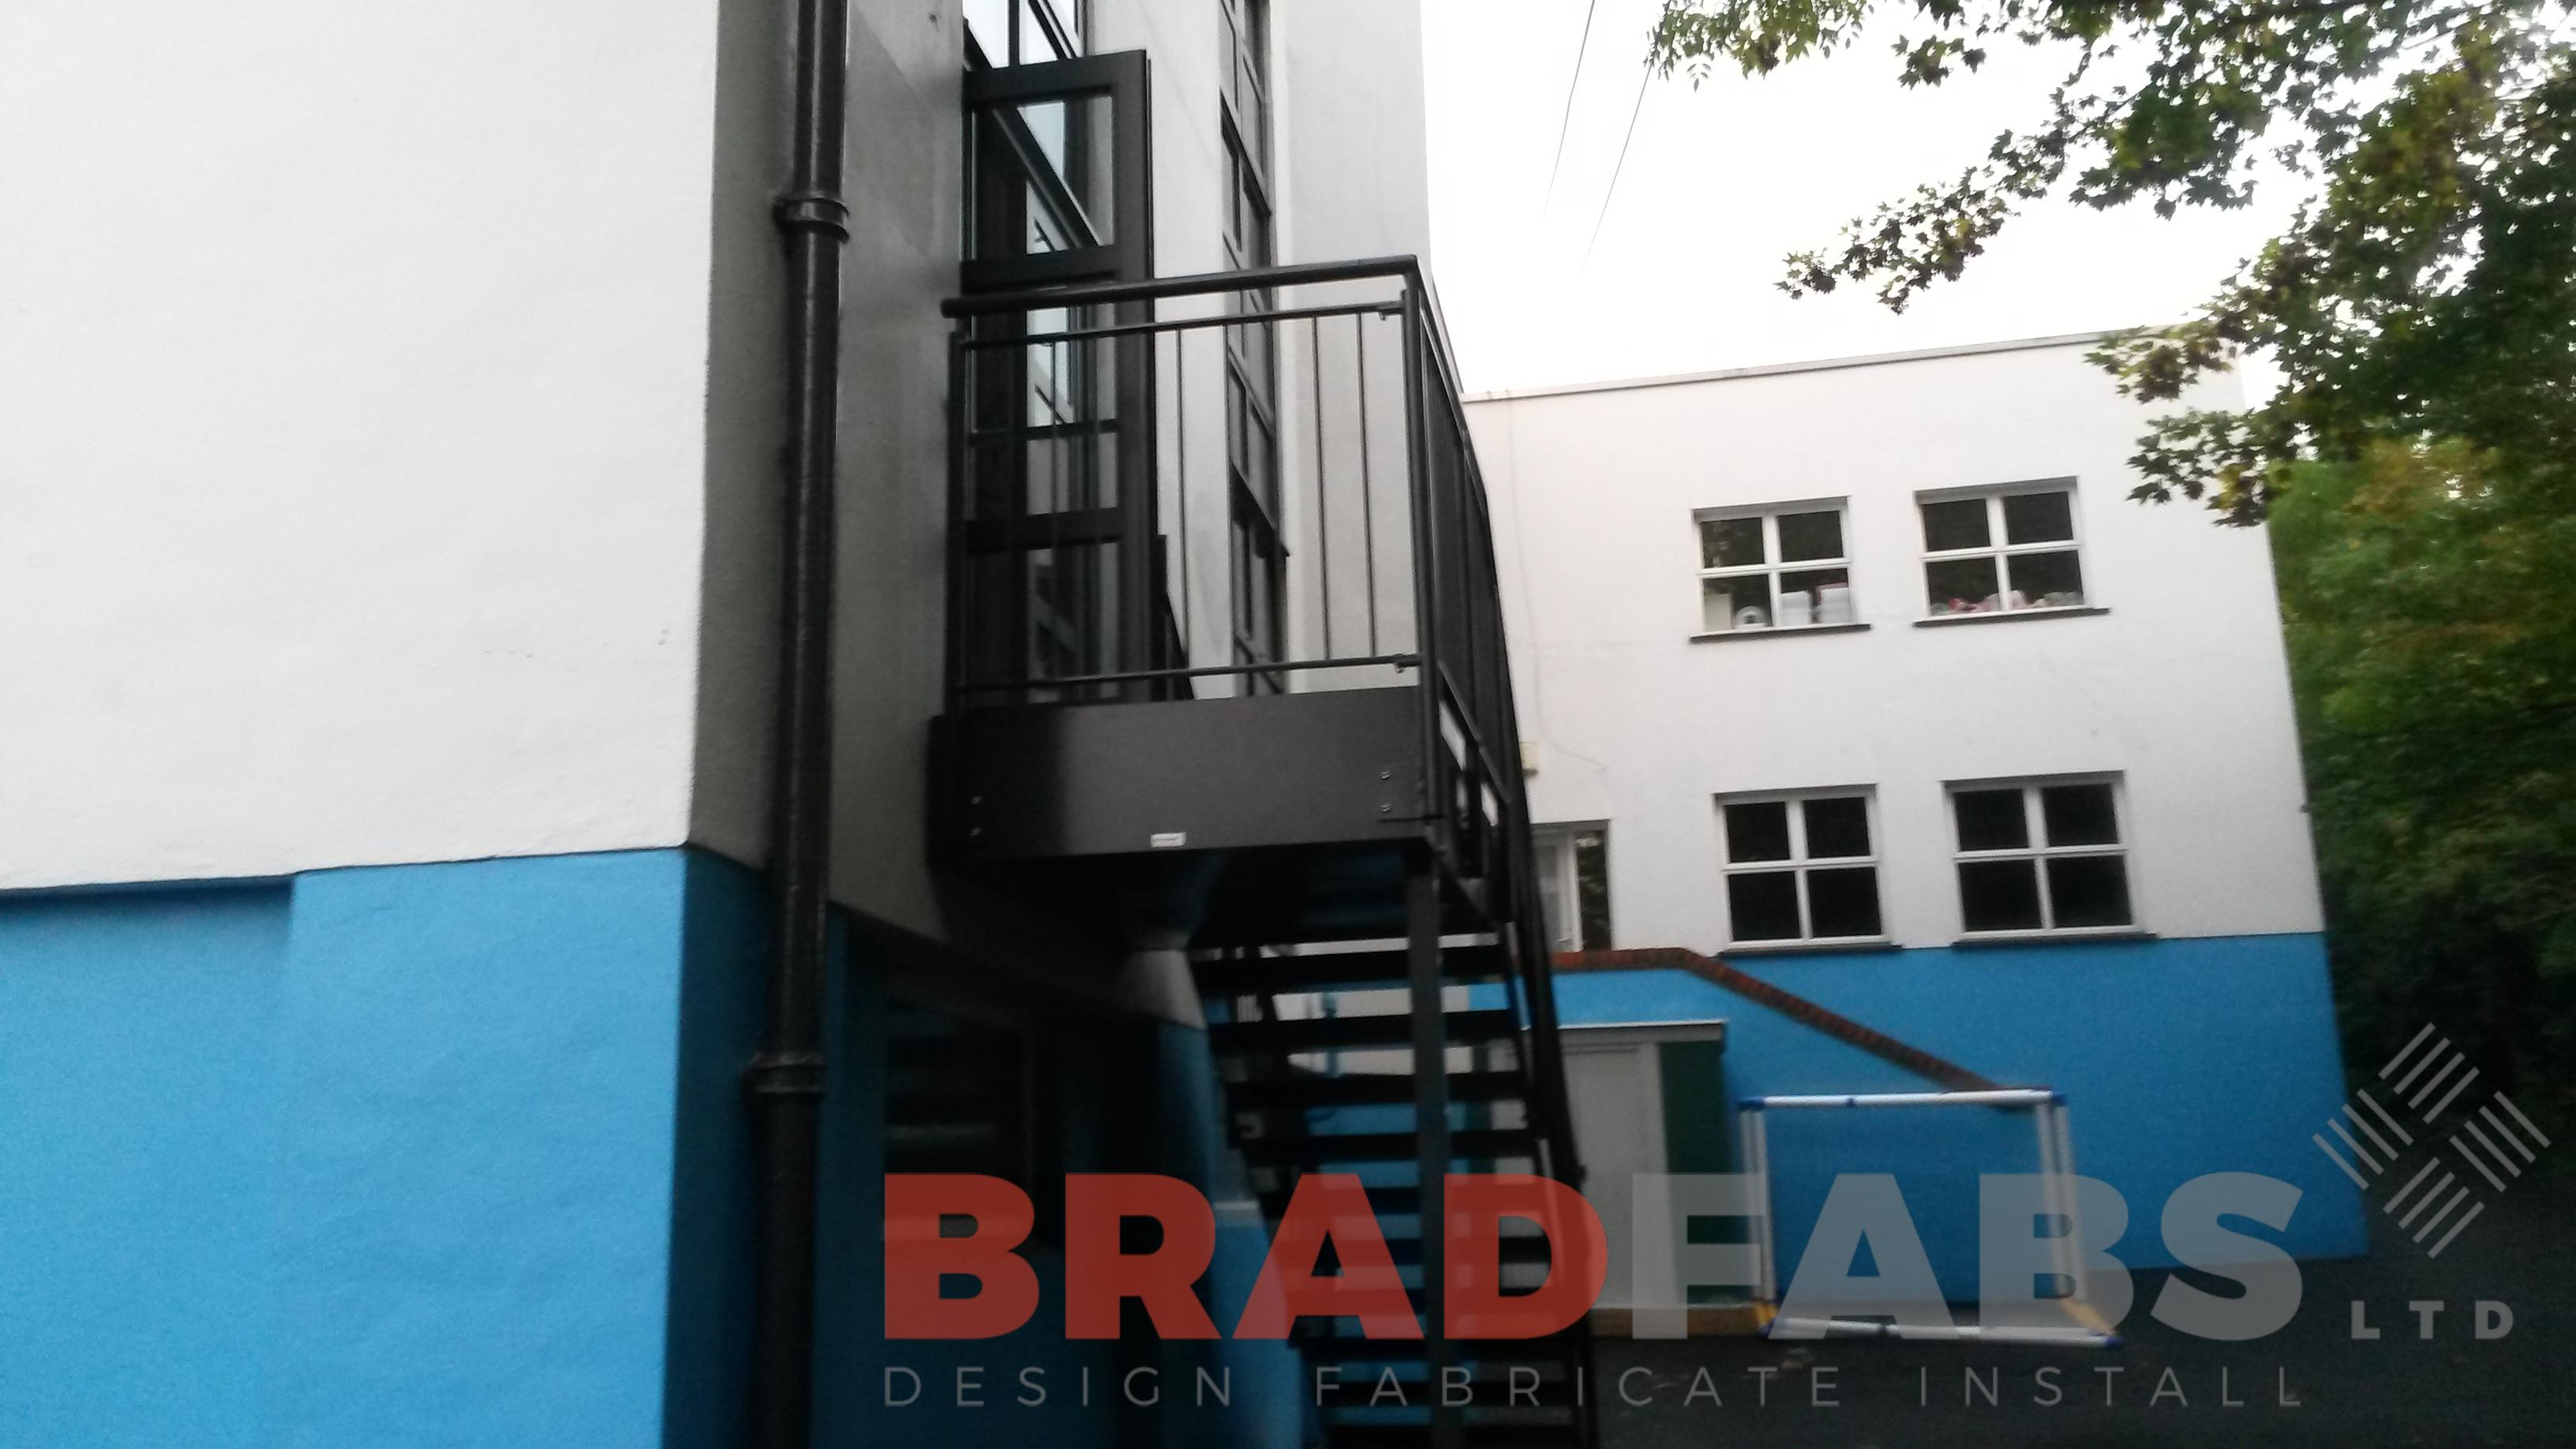 Straight fire escape mild steel powder coated black and galvanised with vertical bar balustrde and durbar treads by Bradfabs Ltd UK